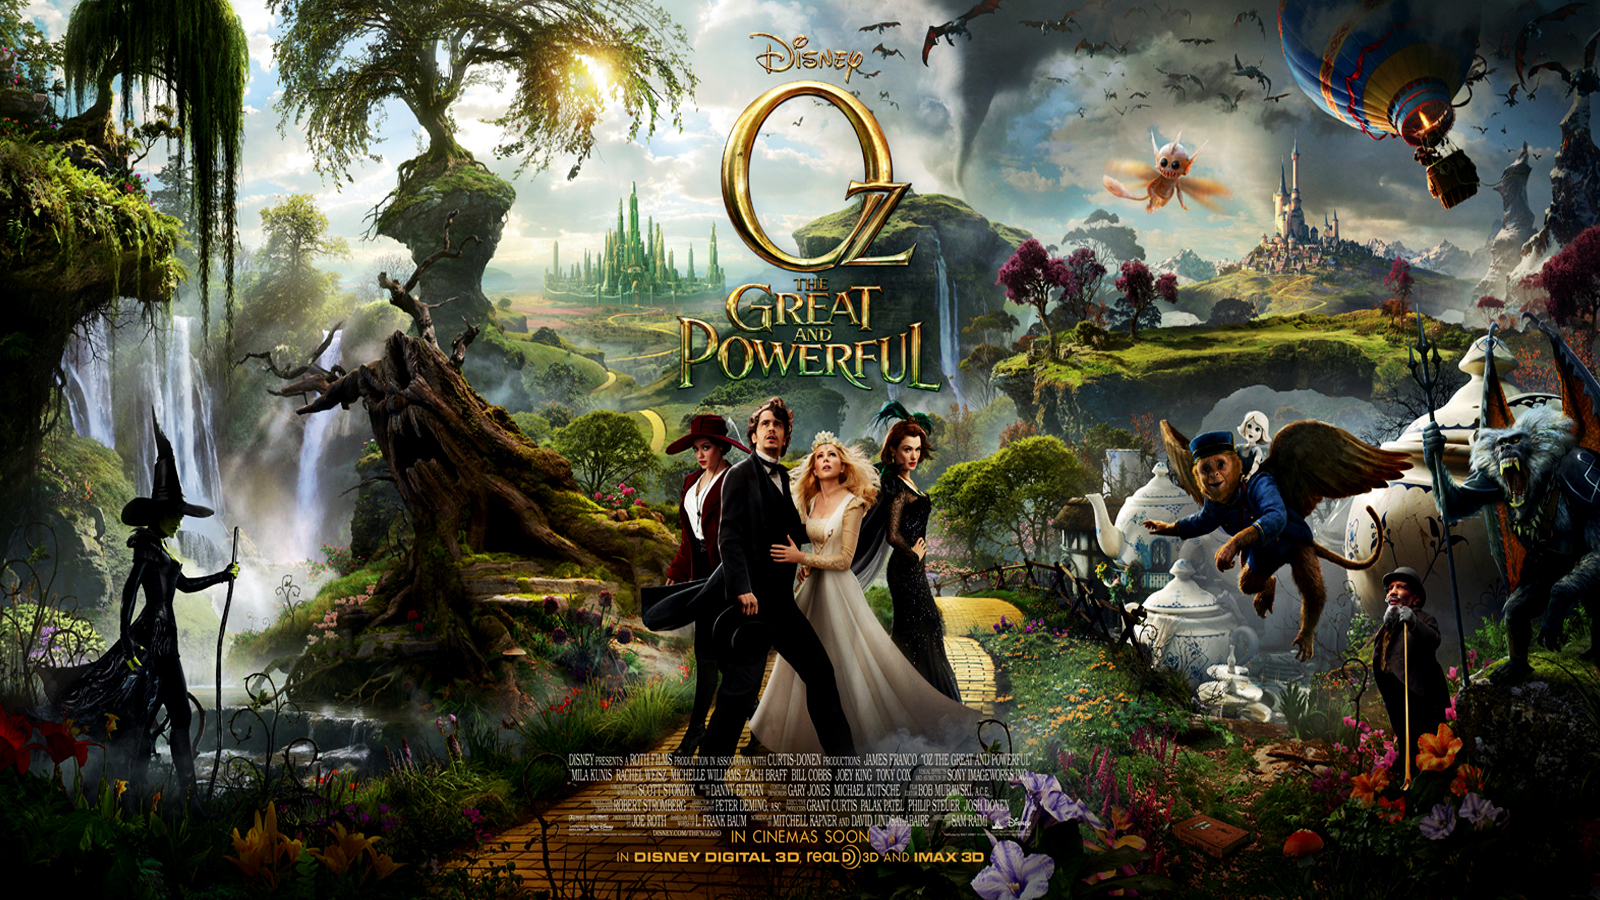 Oz The Great And Powerful Backgrounds on Wallpapers Vista